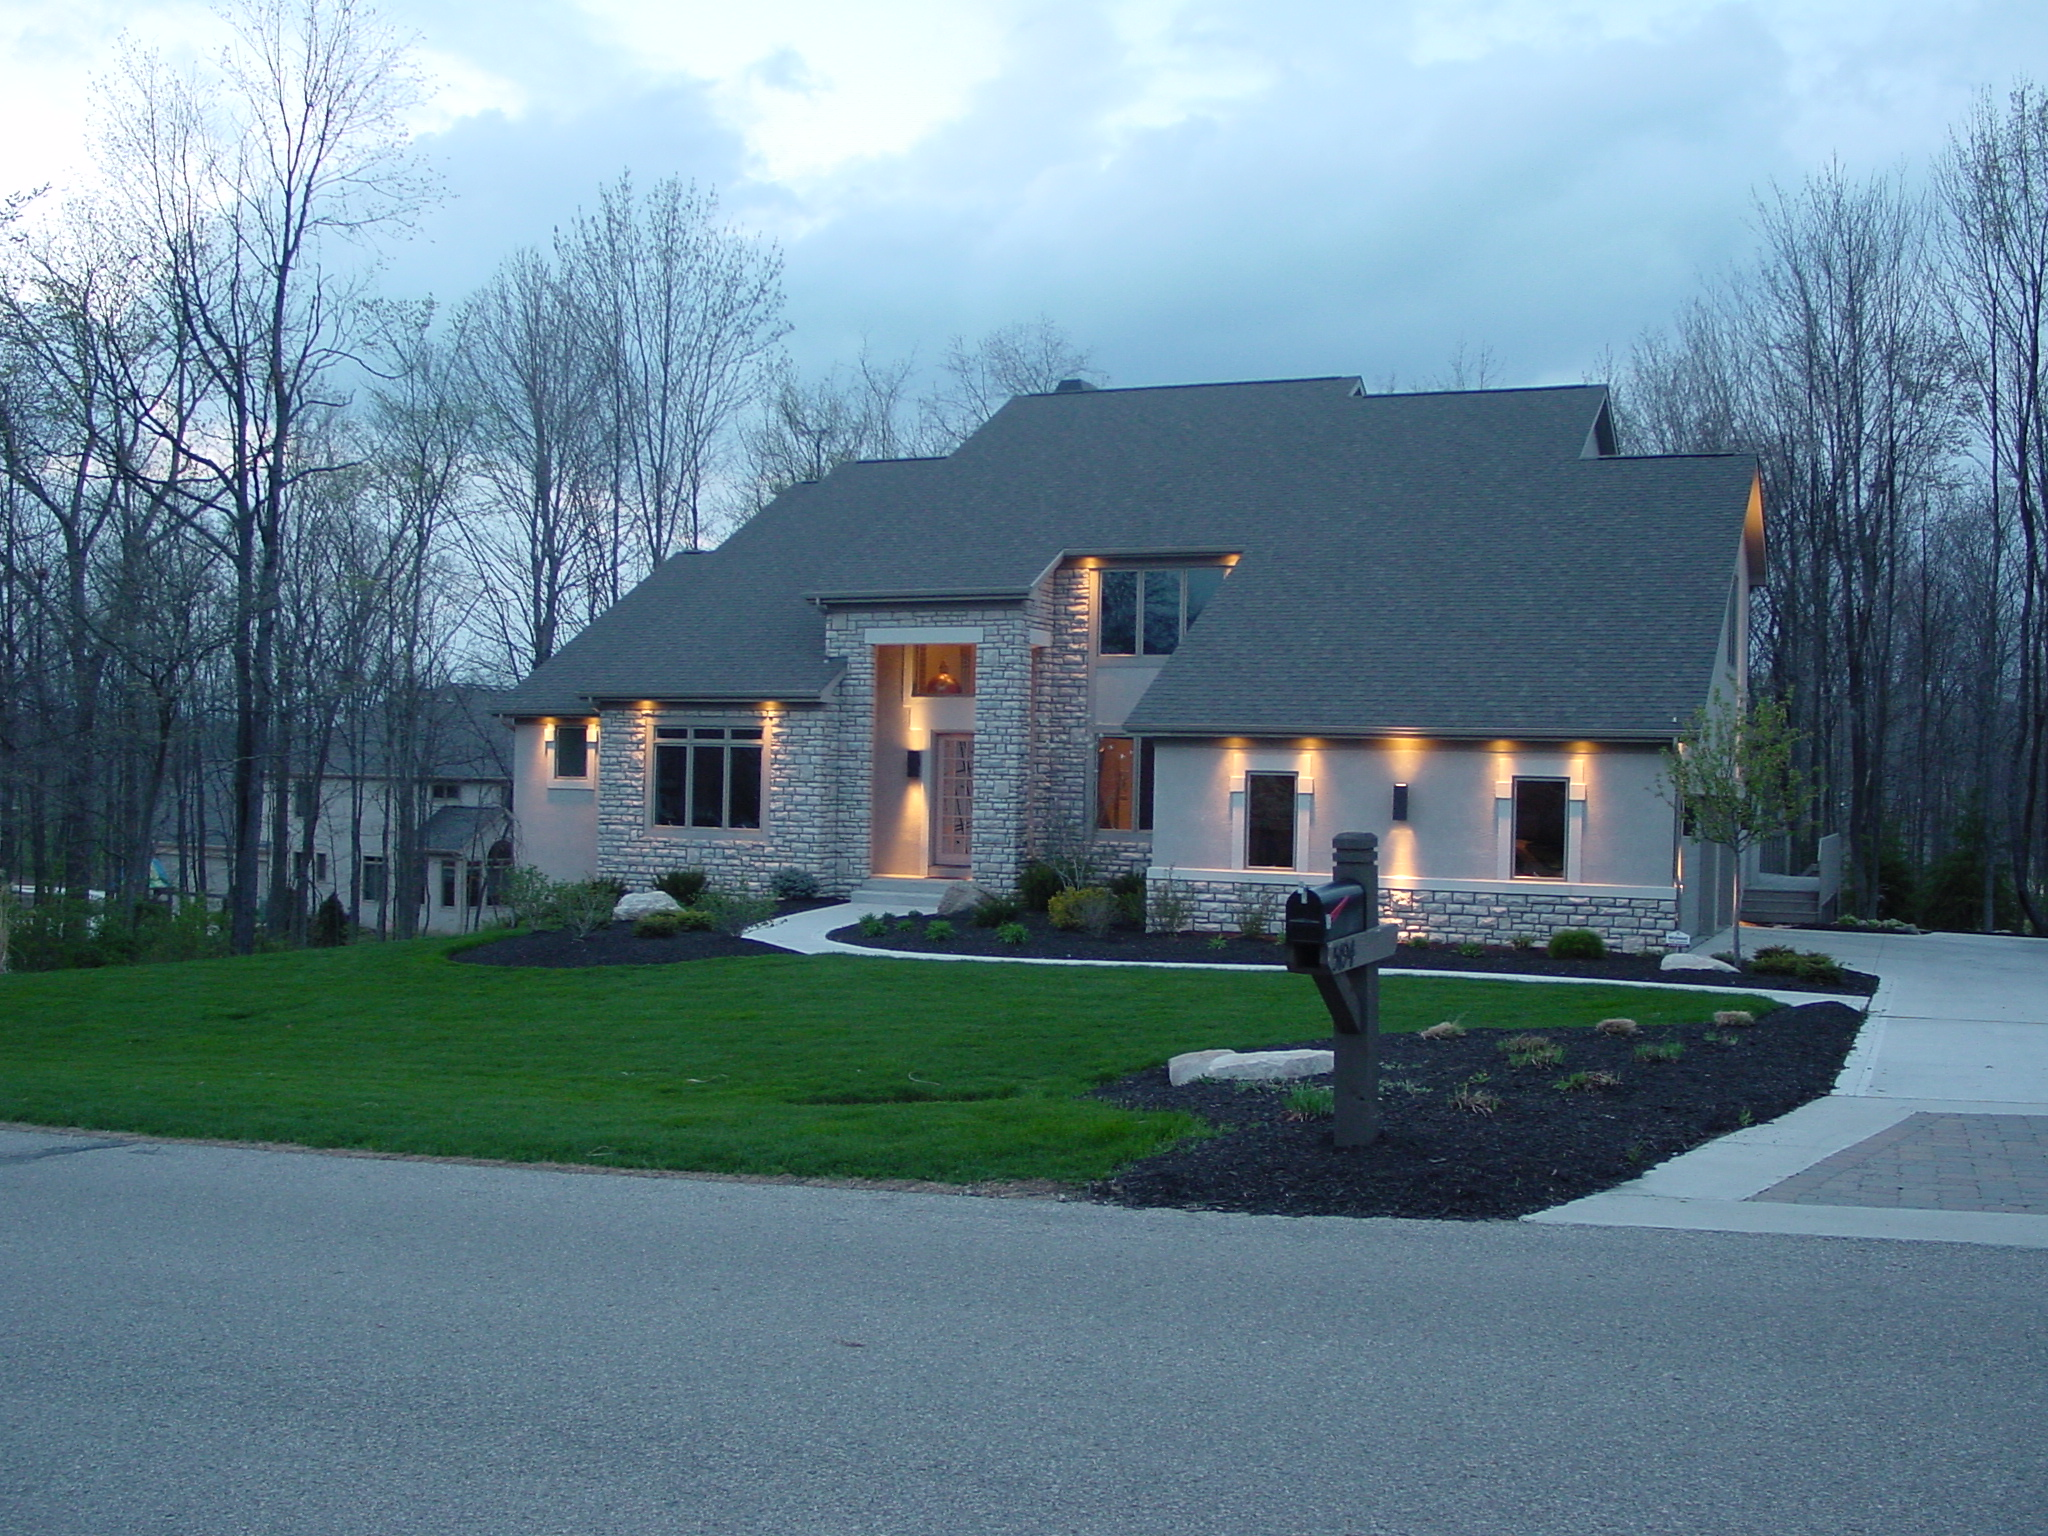 5194 Stratford Ave. Quality Custom Soft Contemporary Home In Wedgewood For Sale - Olentangy Schools